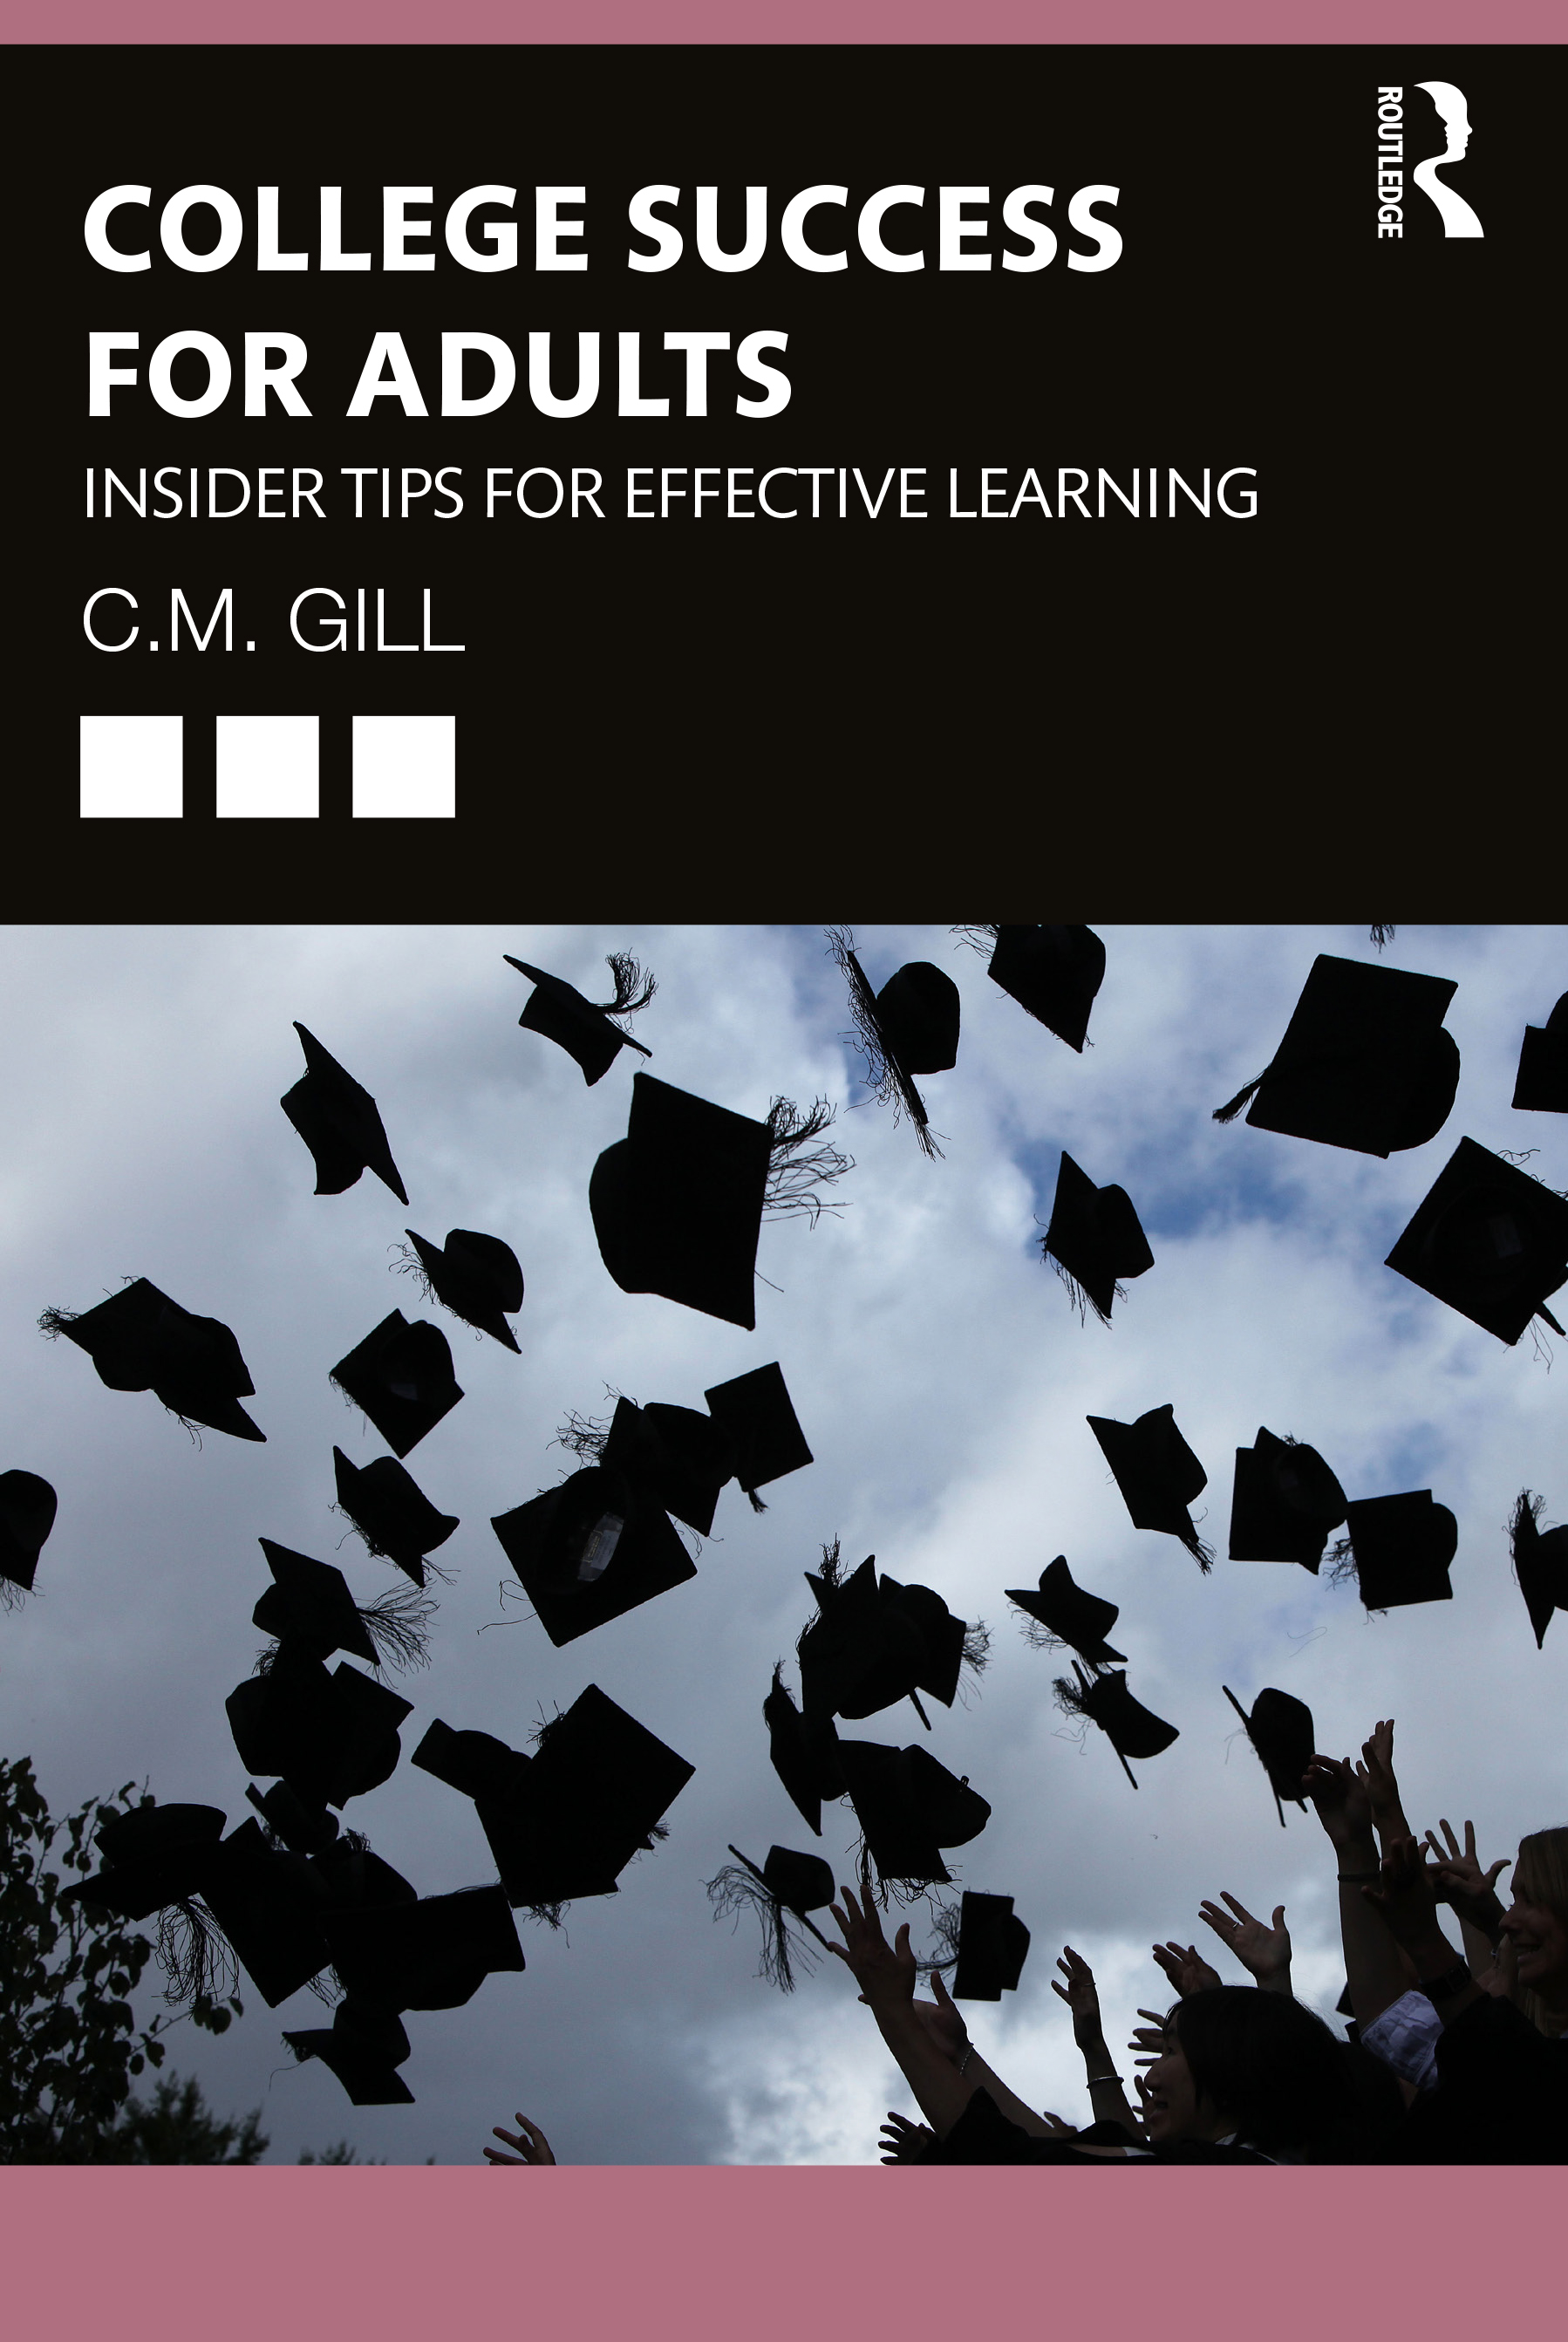 College Success for Adults: Insider Tips for Effective Learning book cover